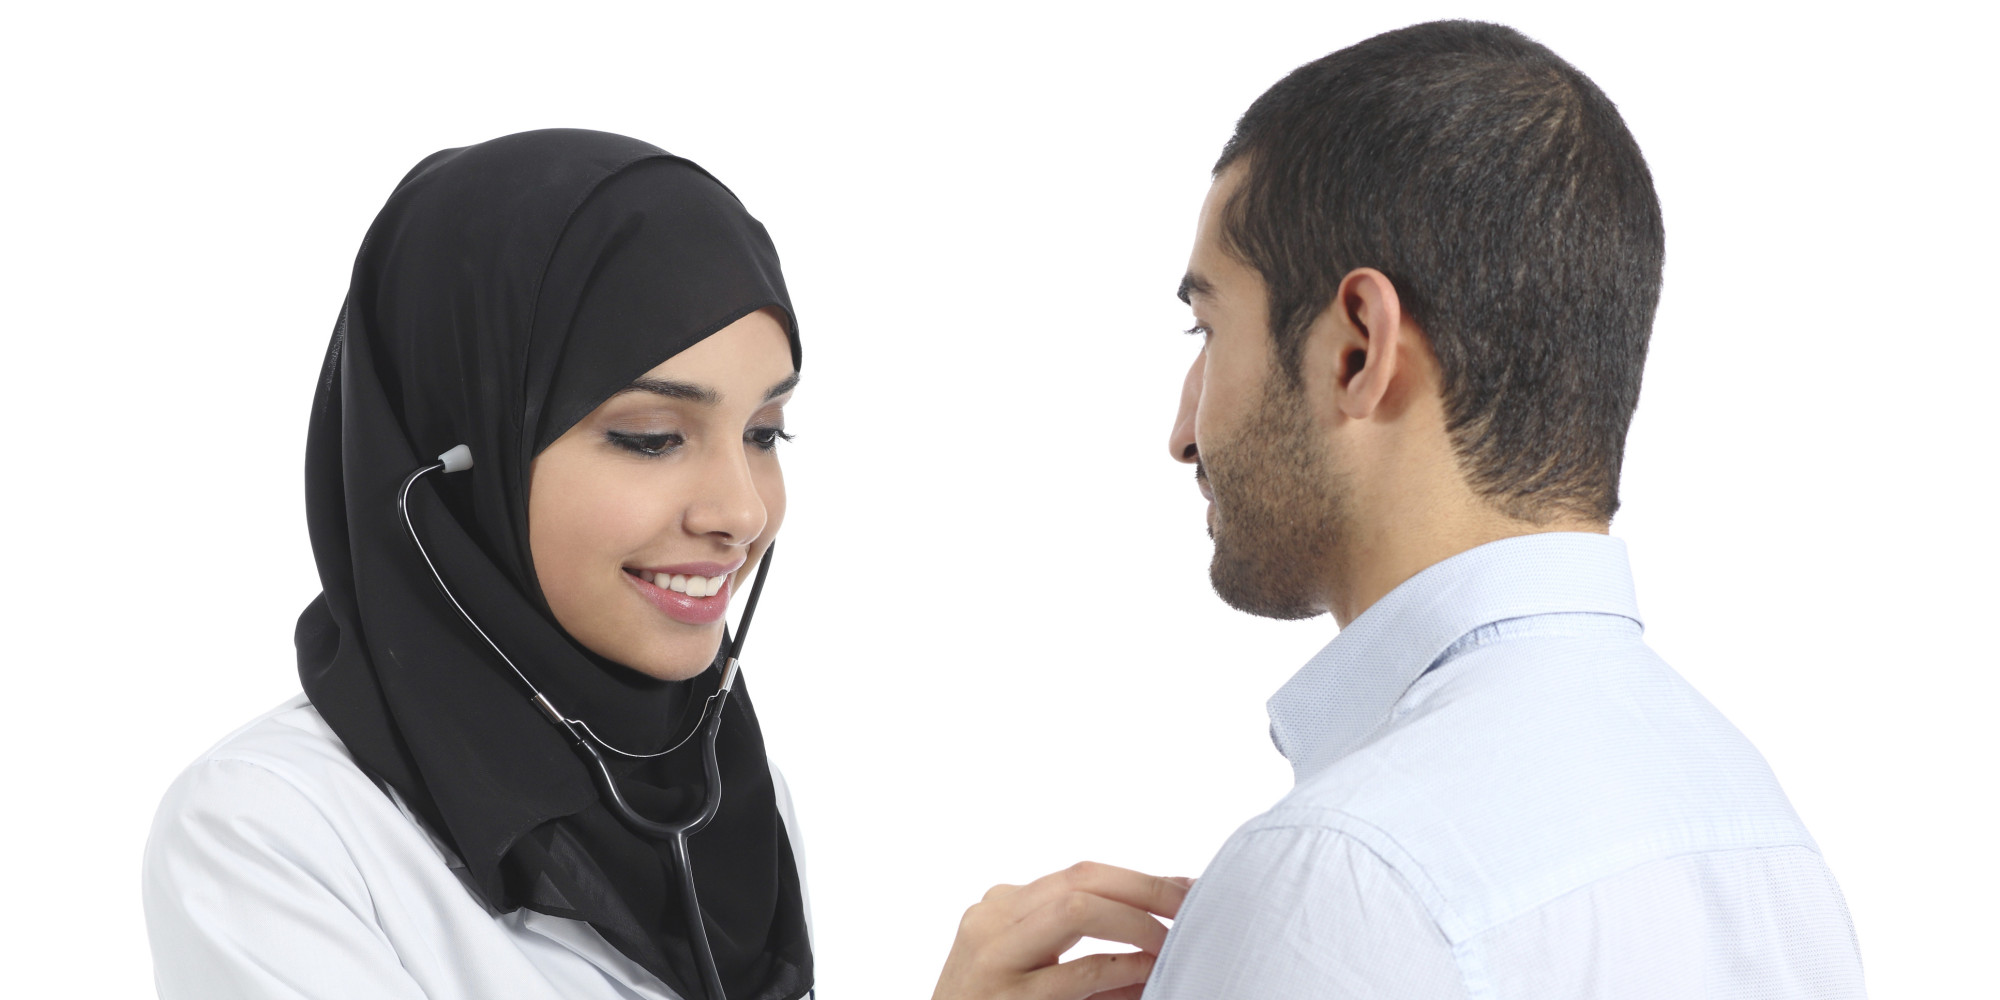 Jewish And Muslim Doctors Join Forces To Give Low-Income ...